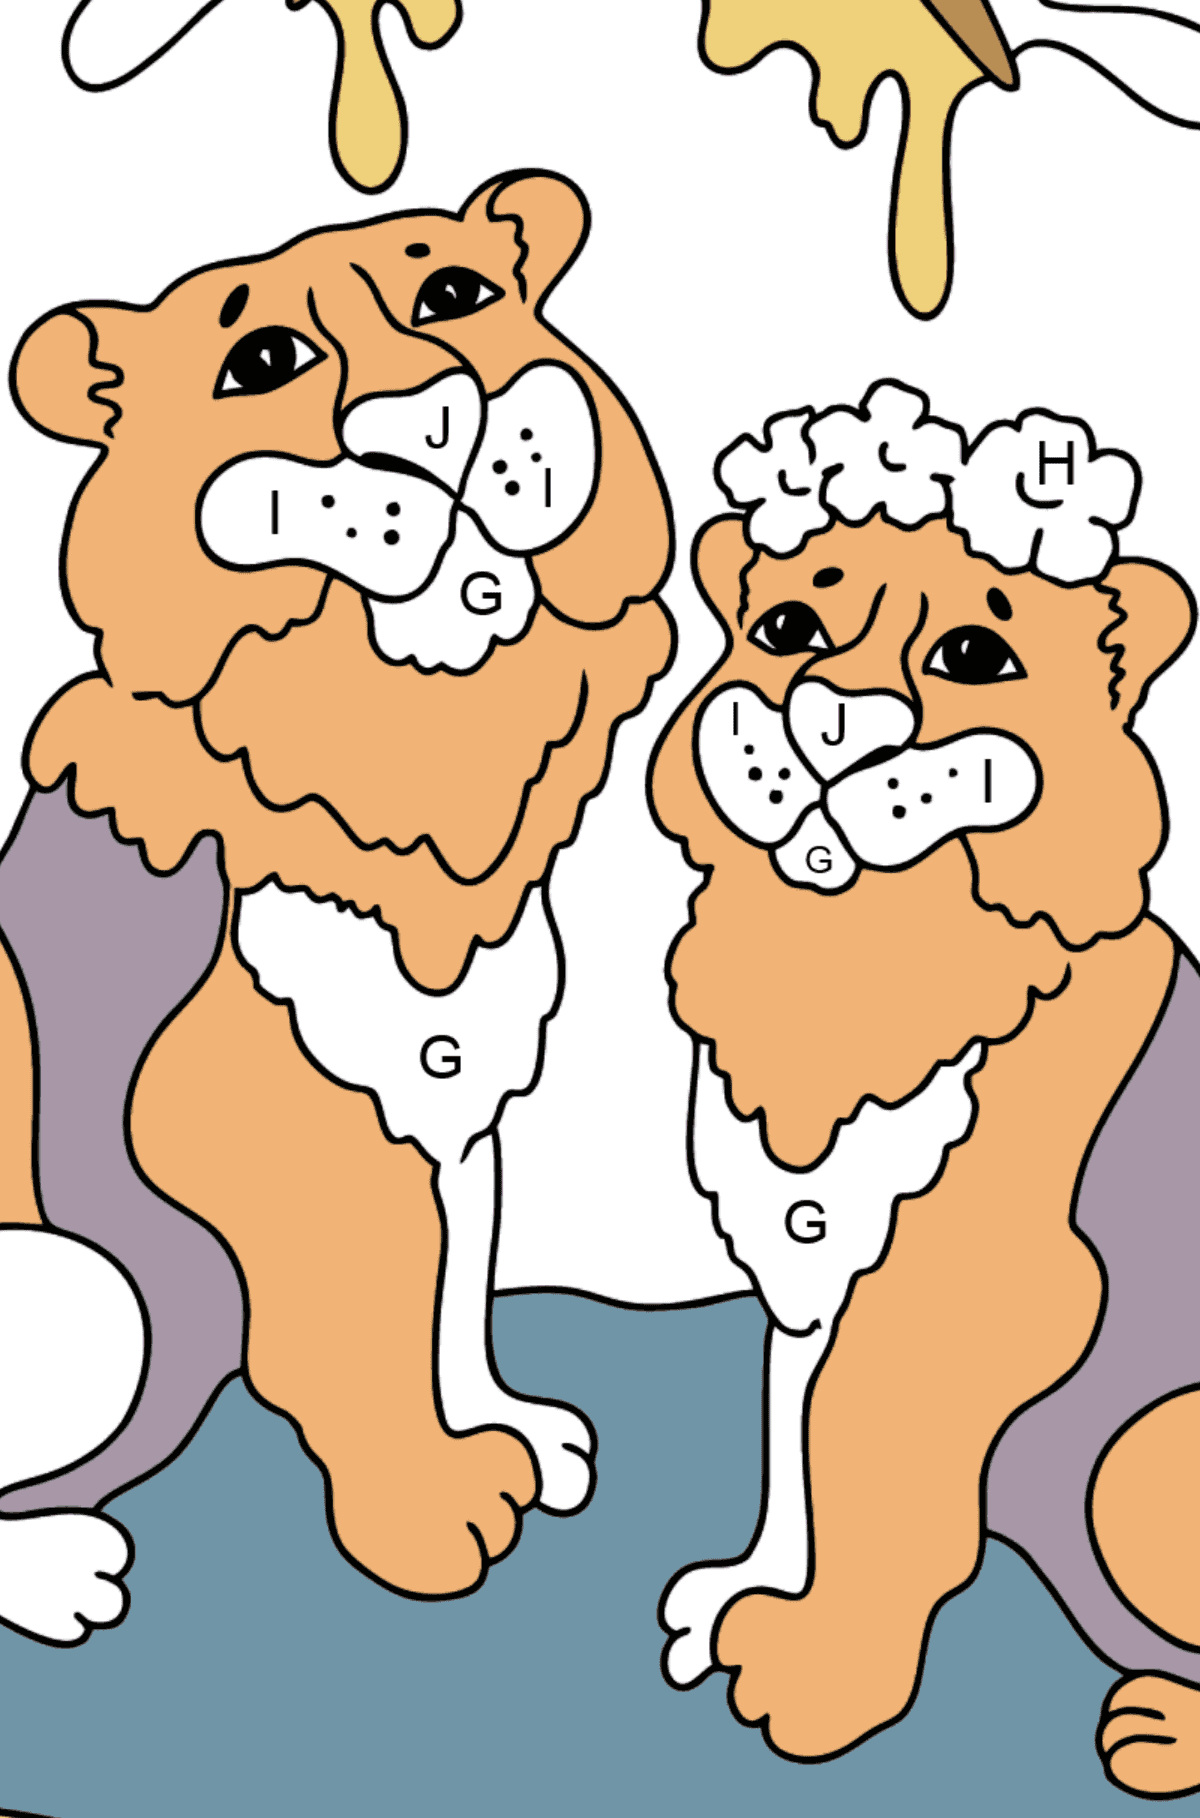 Coloring Page - Tigers with Butterflies - Coloring by Letters for Kids